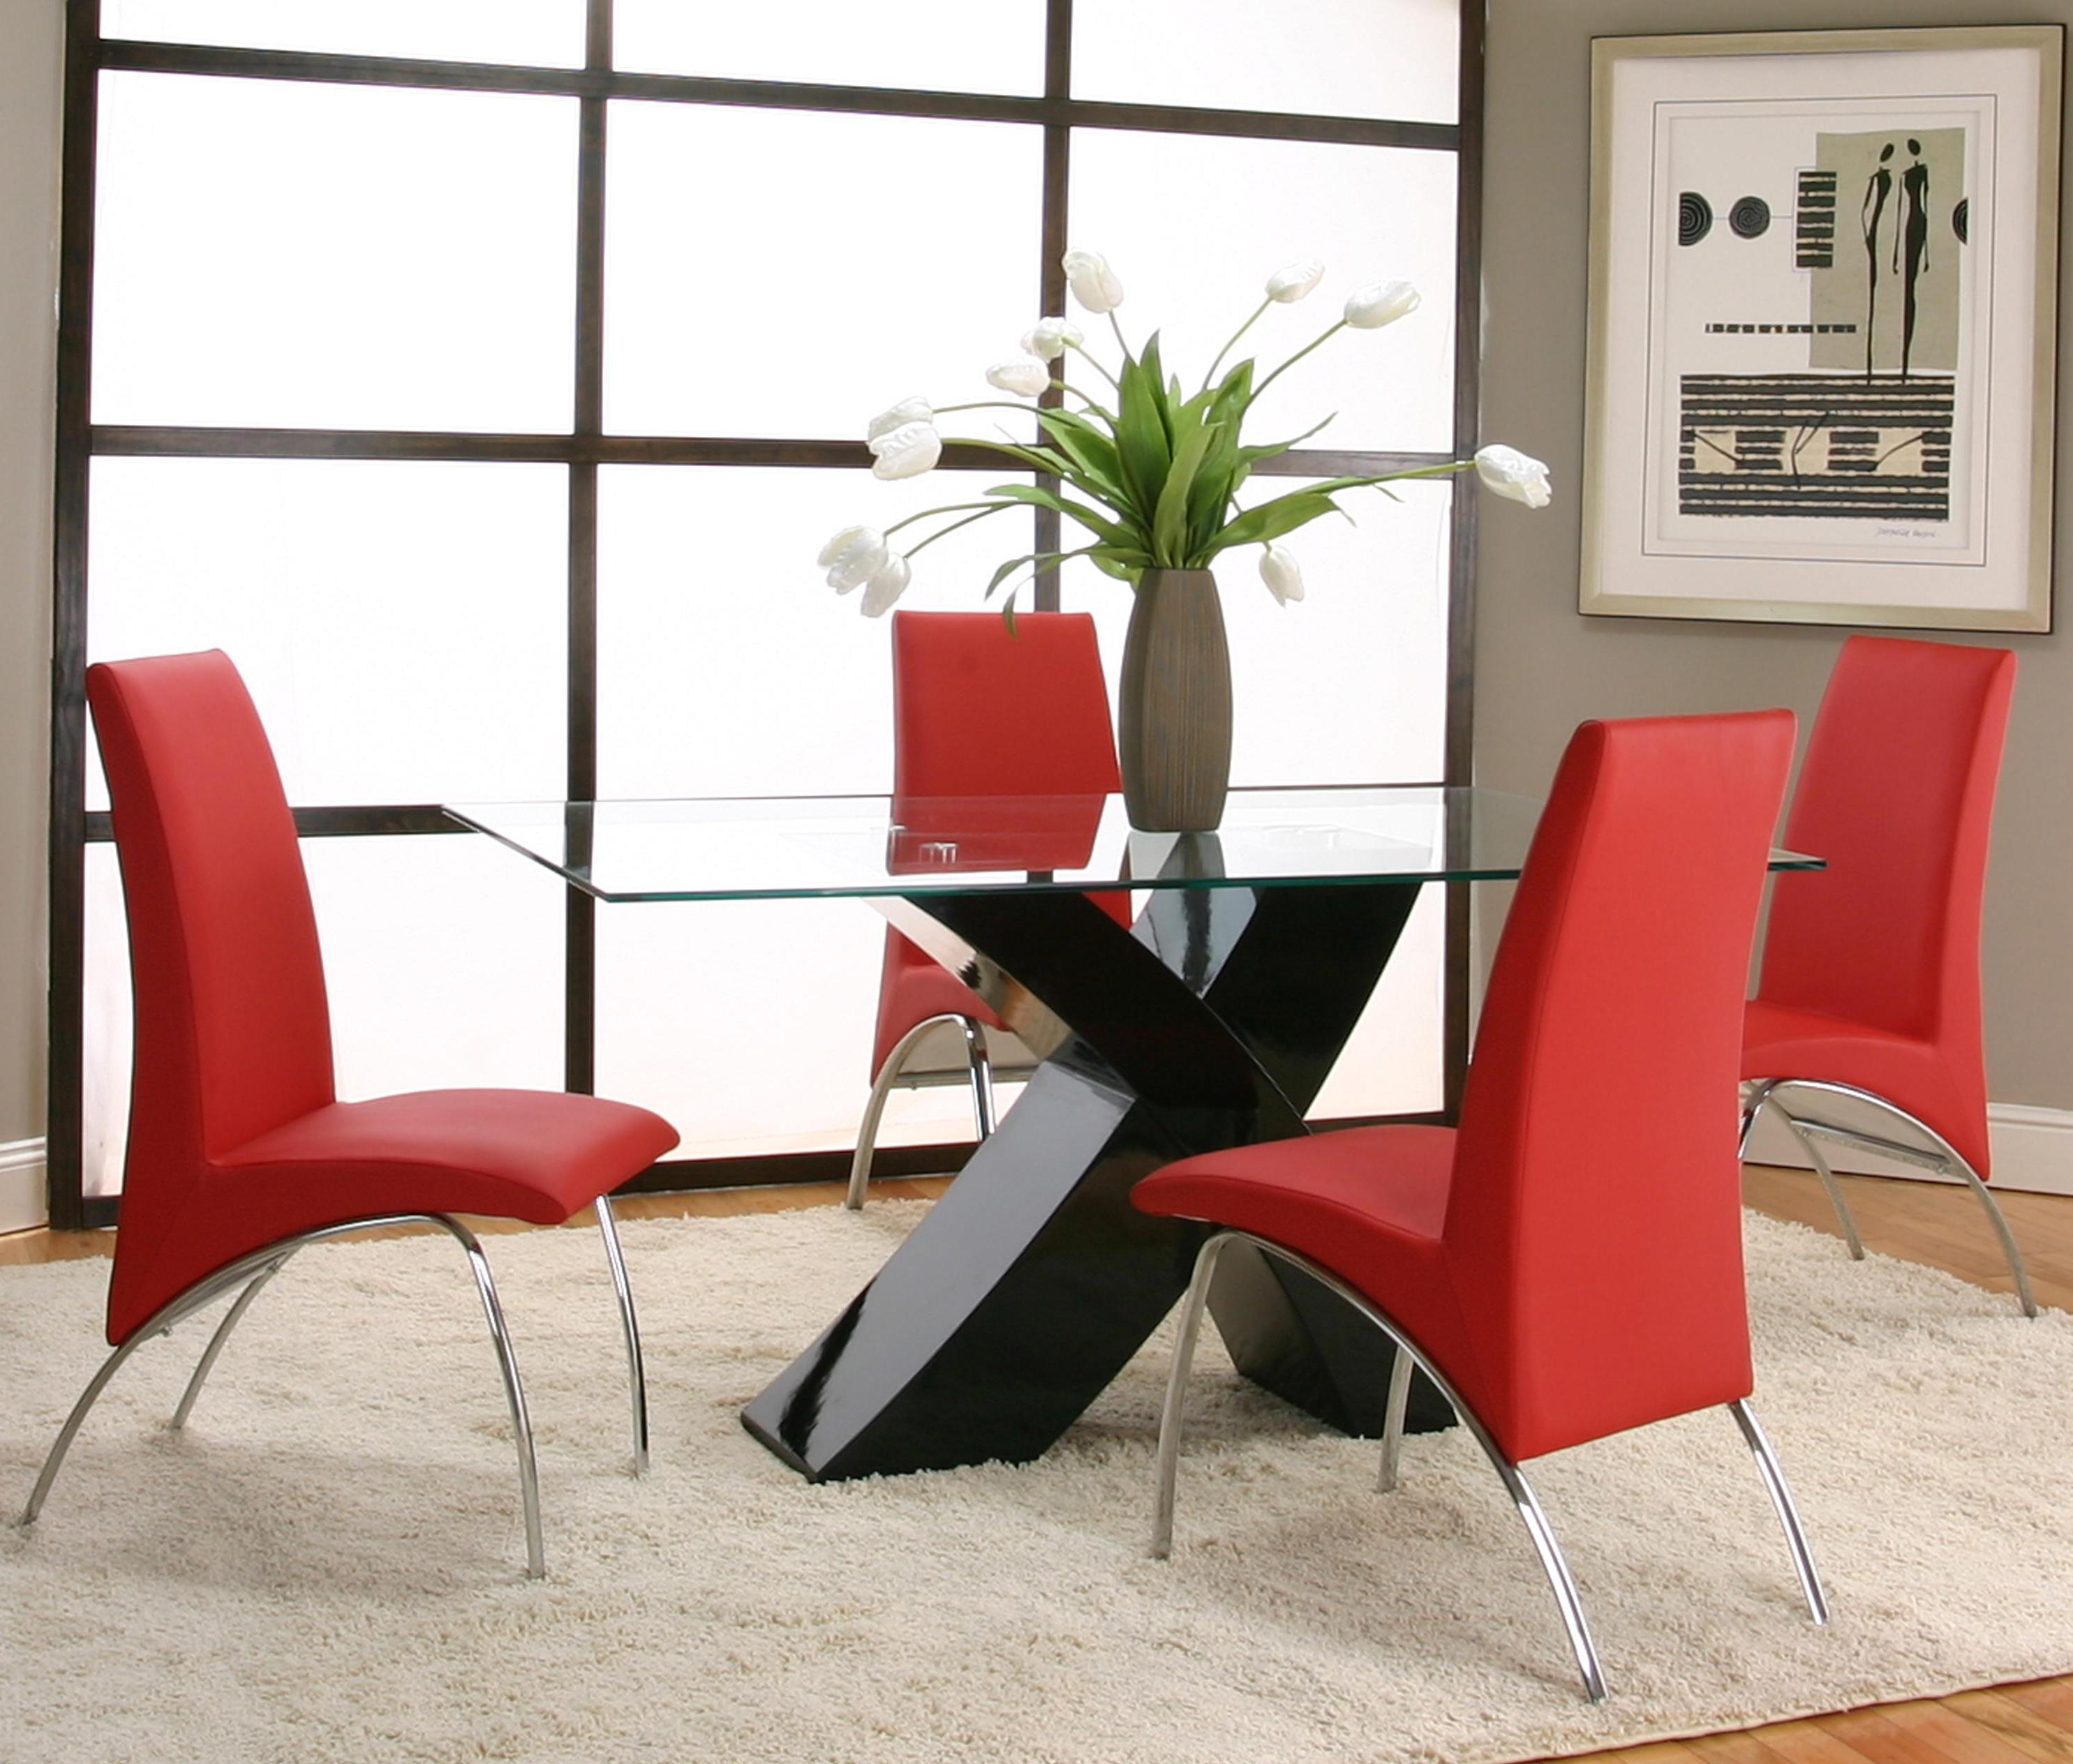 5 piece rectangular glass top table with black base and red chairs - Red Dining Room Set